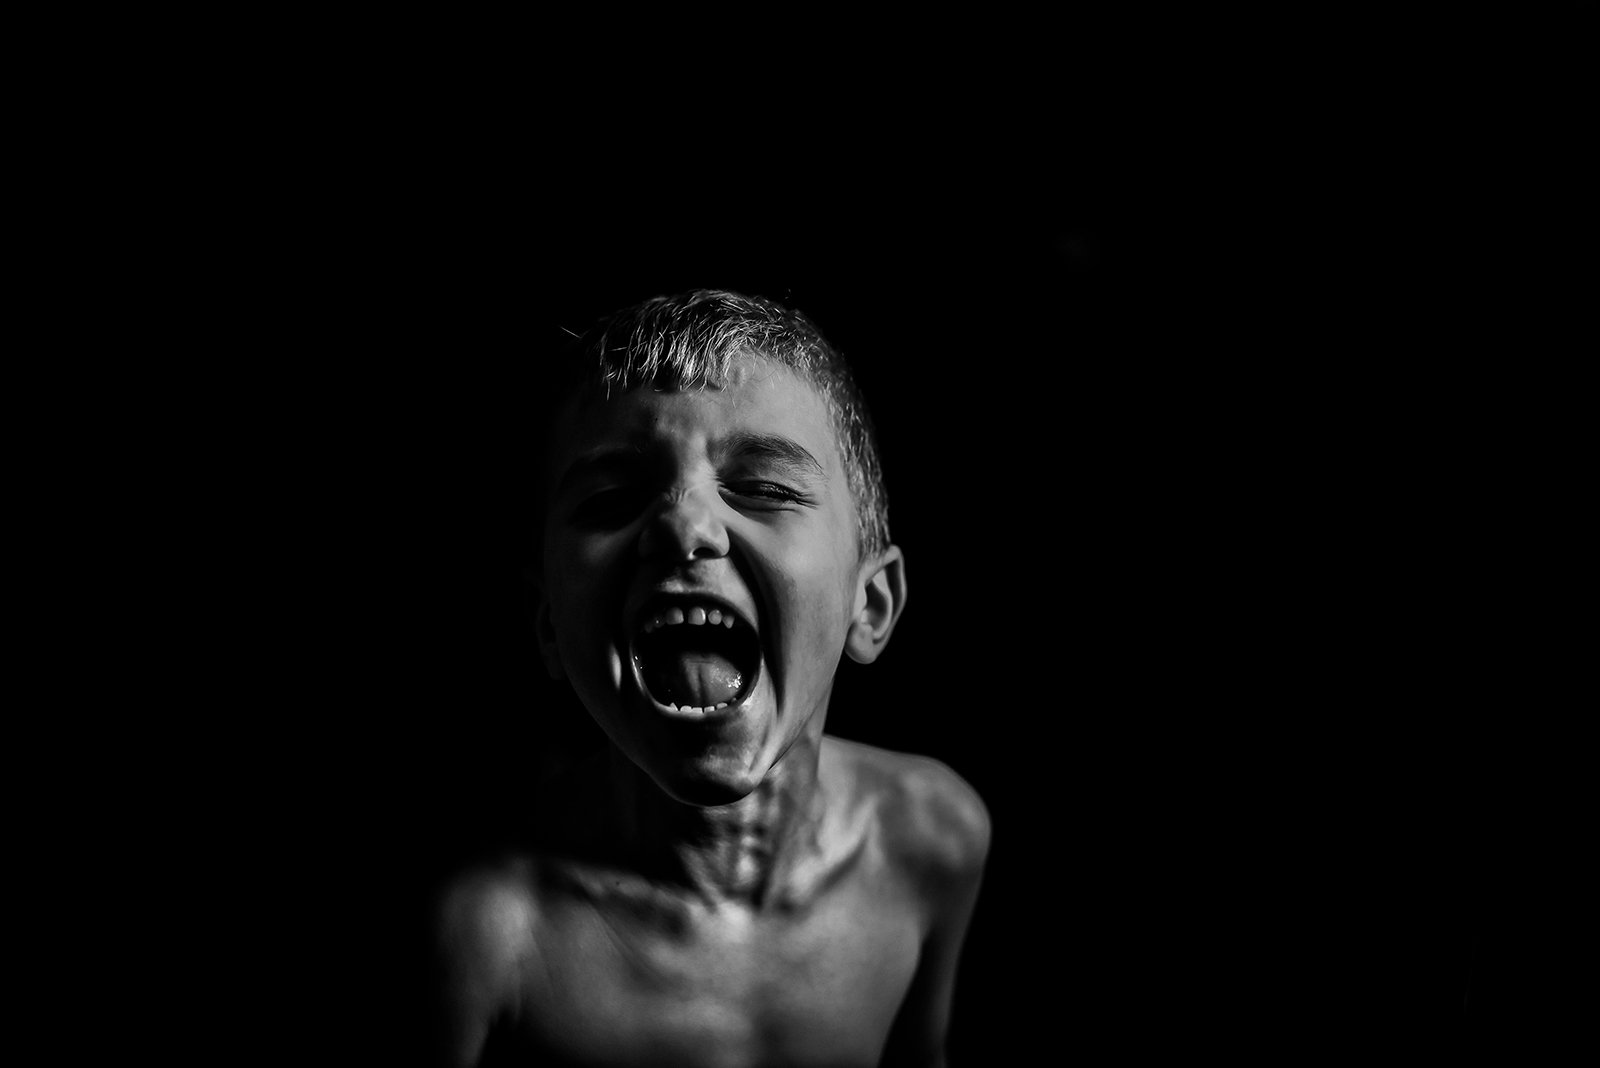 Melissa Sey_melissasey clickin moms march forum photo contest boy joyfully screaming black and white